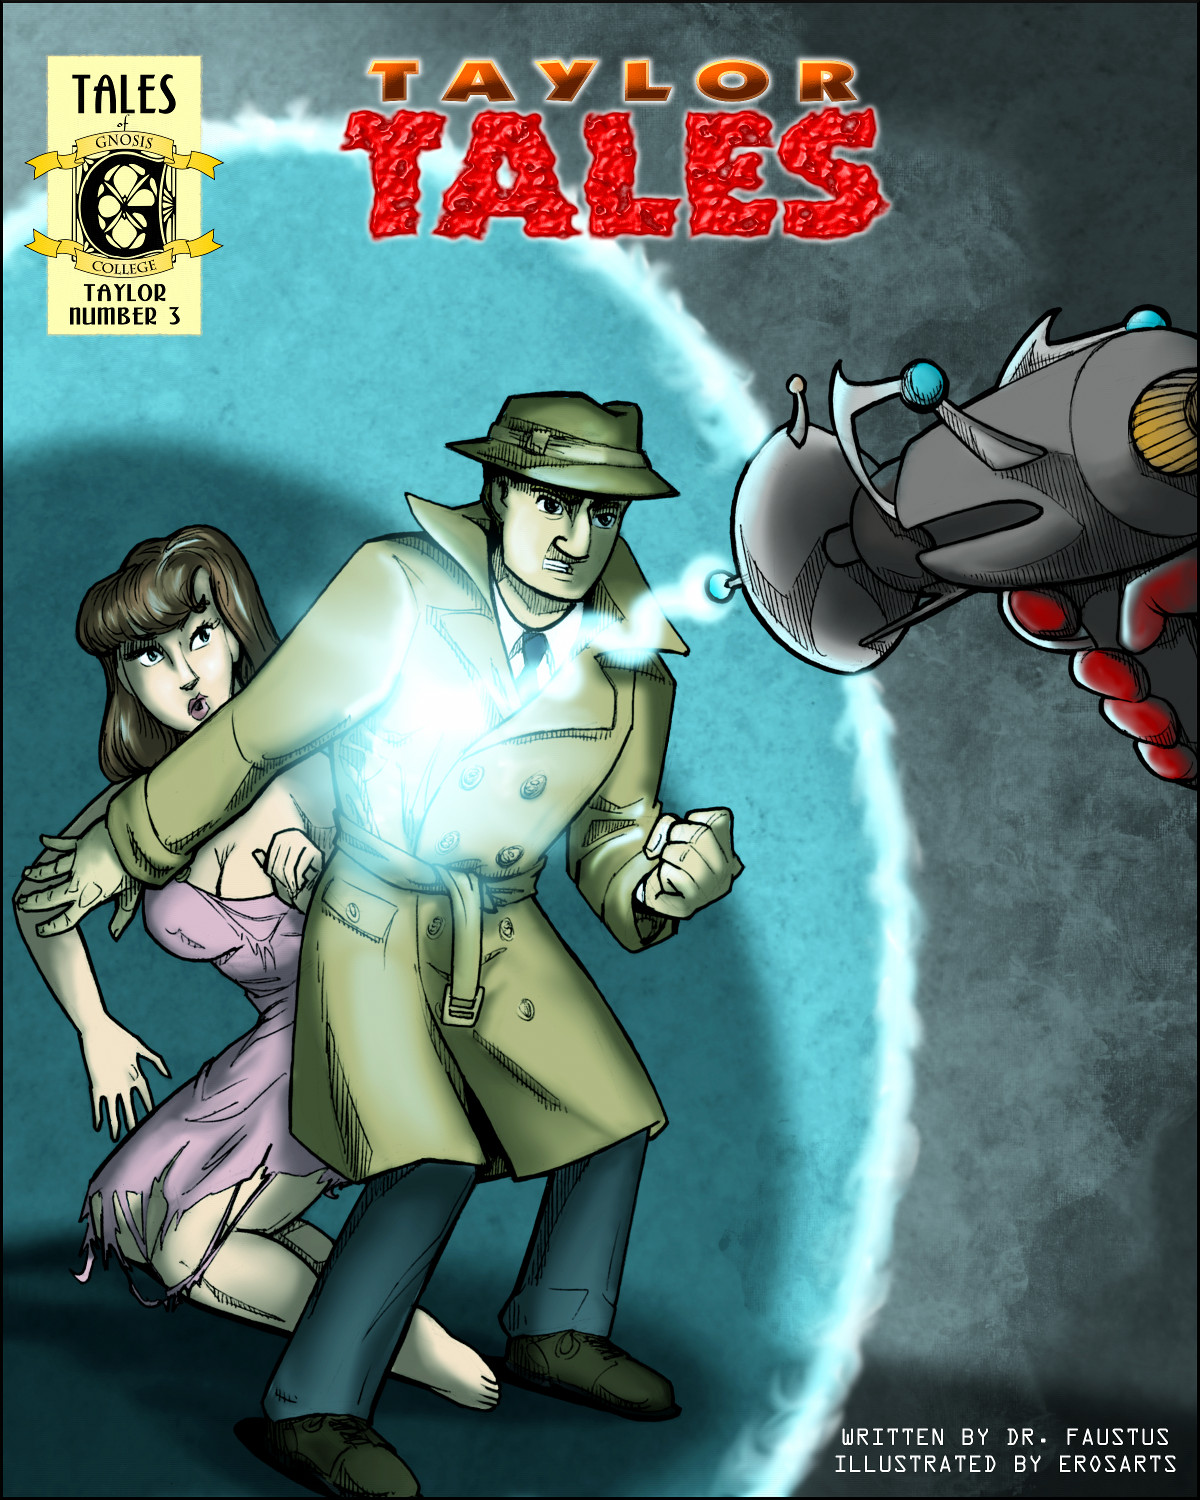 A trench-coat wearing man shields a dame from a mysterious ray gun.